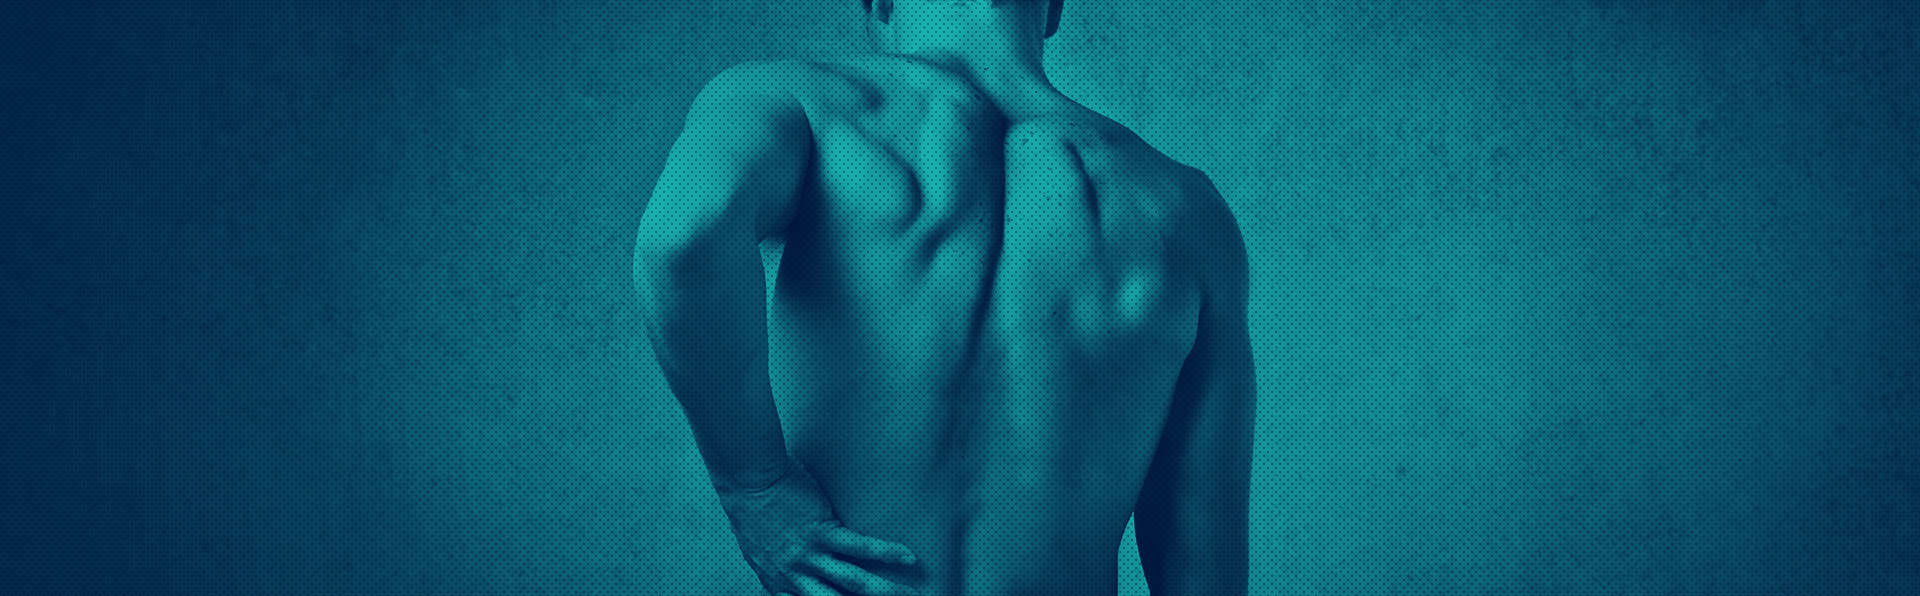 Do you suffer from back pain?